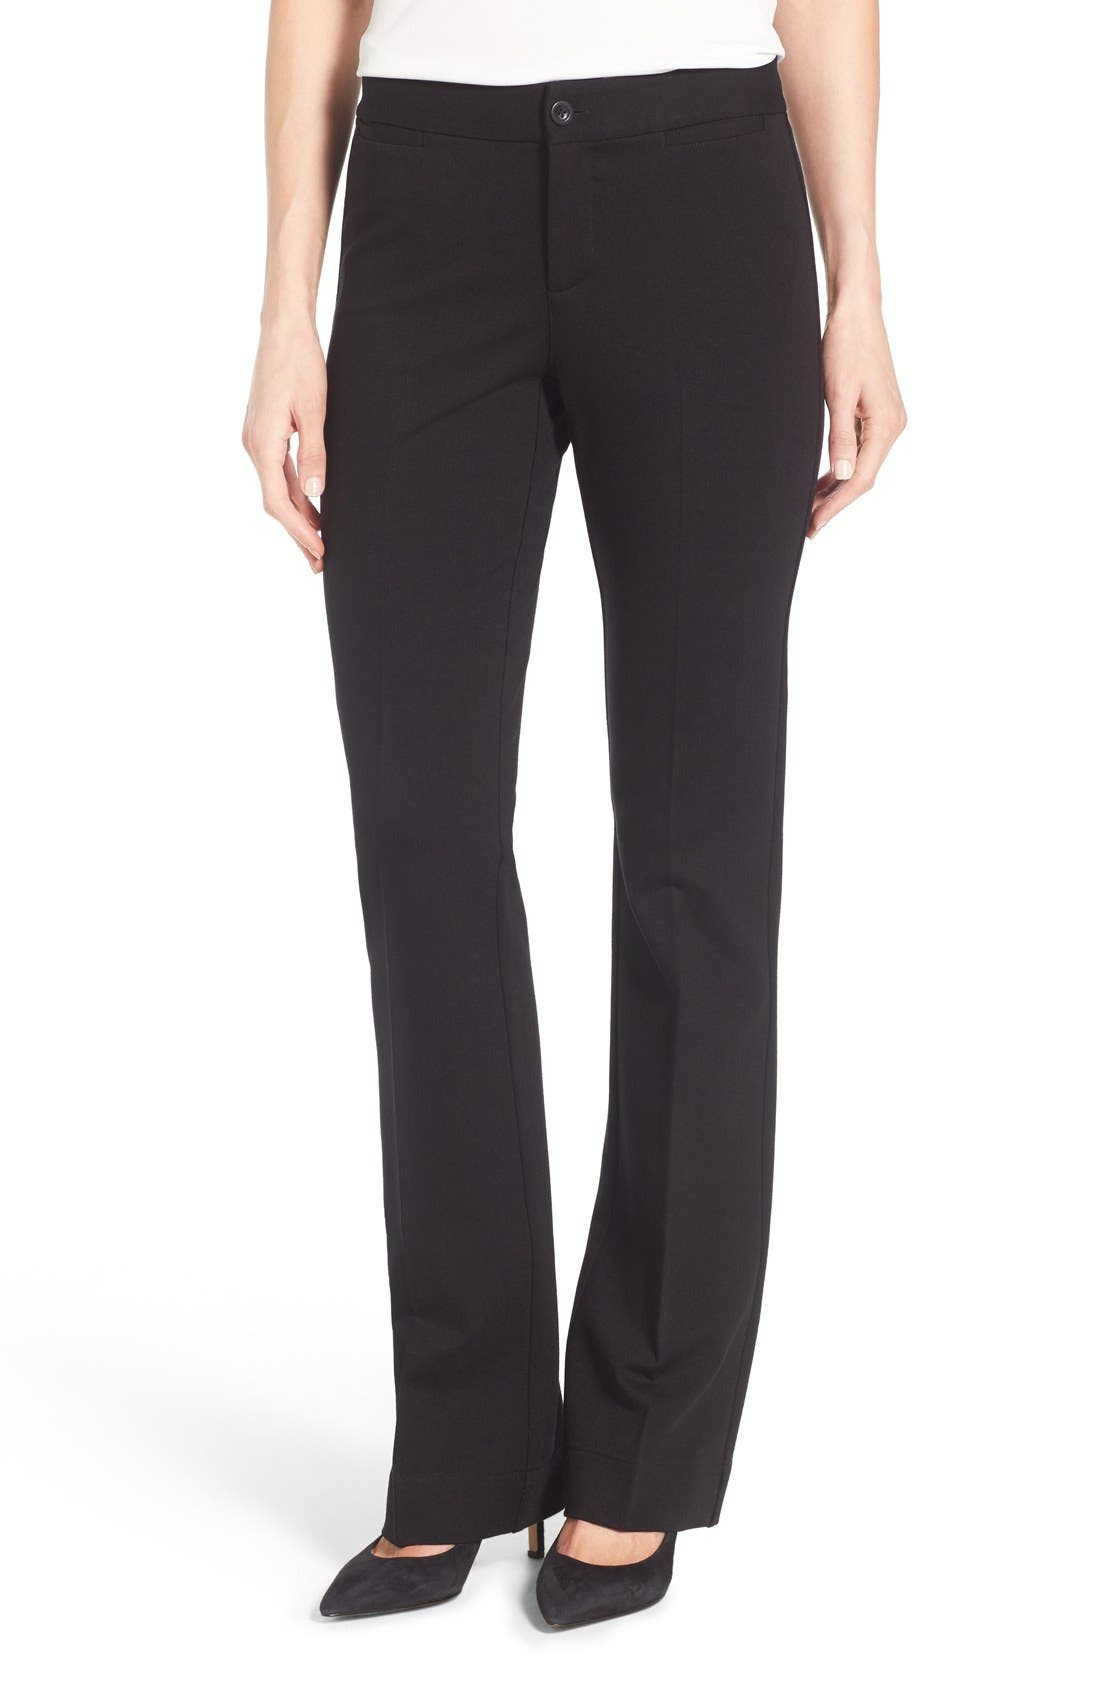 Main Image - NYDJ Michelle Stretch Ponte Trousers (Regular & Petite)